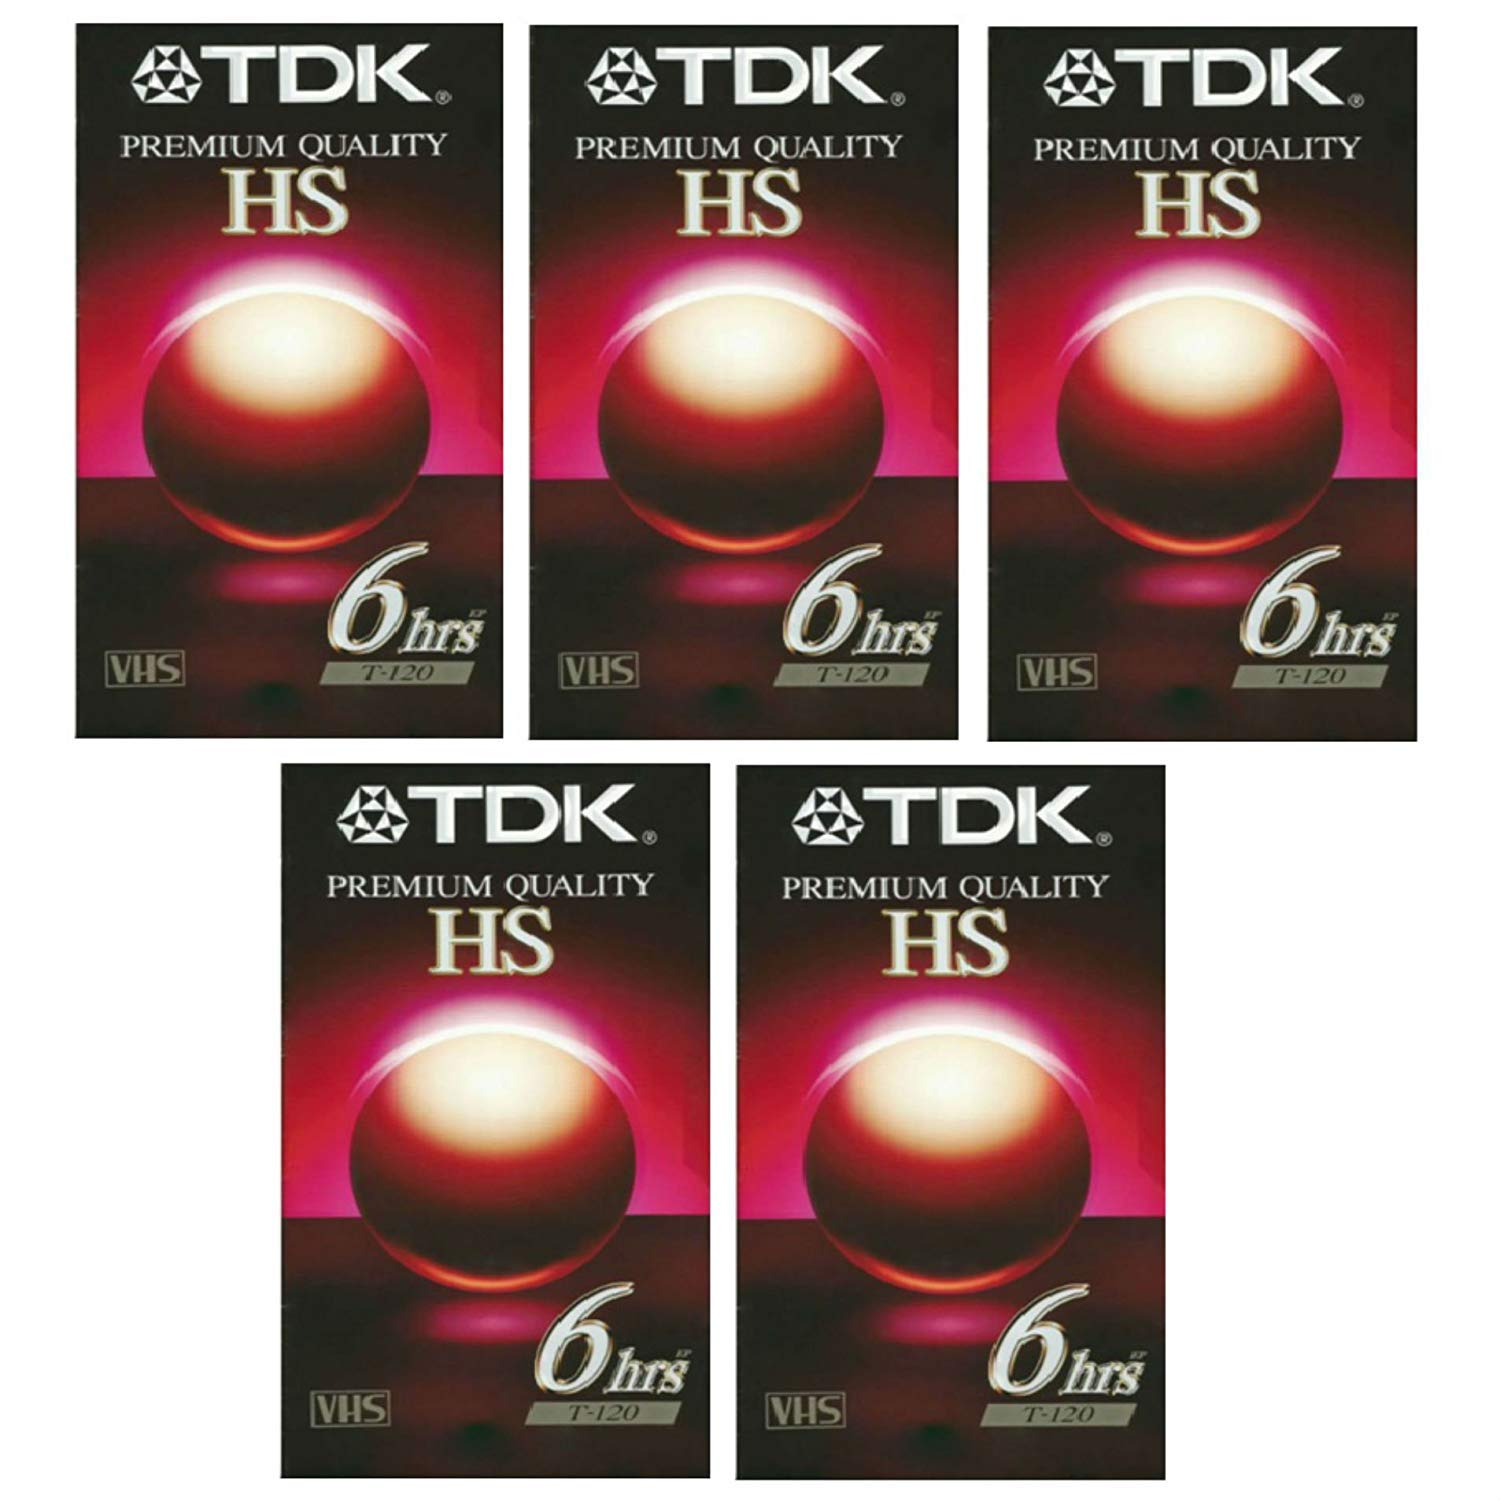 TDK Premium Quality HS 6Hrs T-120 VHS 5pk by TDK Electronics Corp.